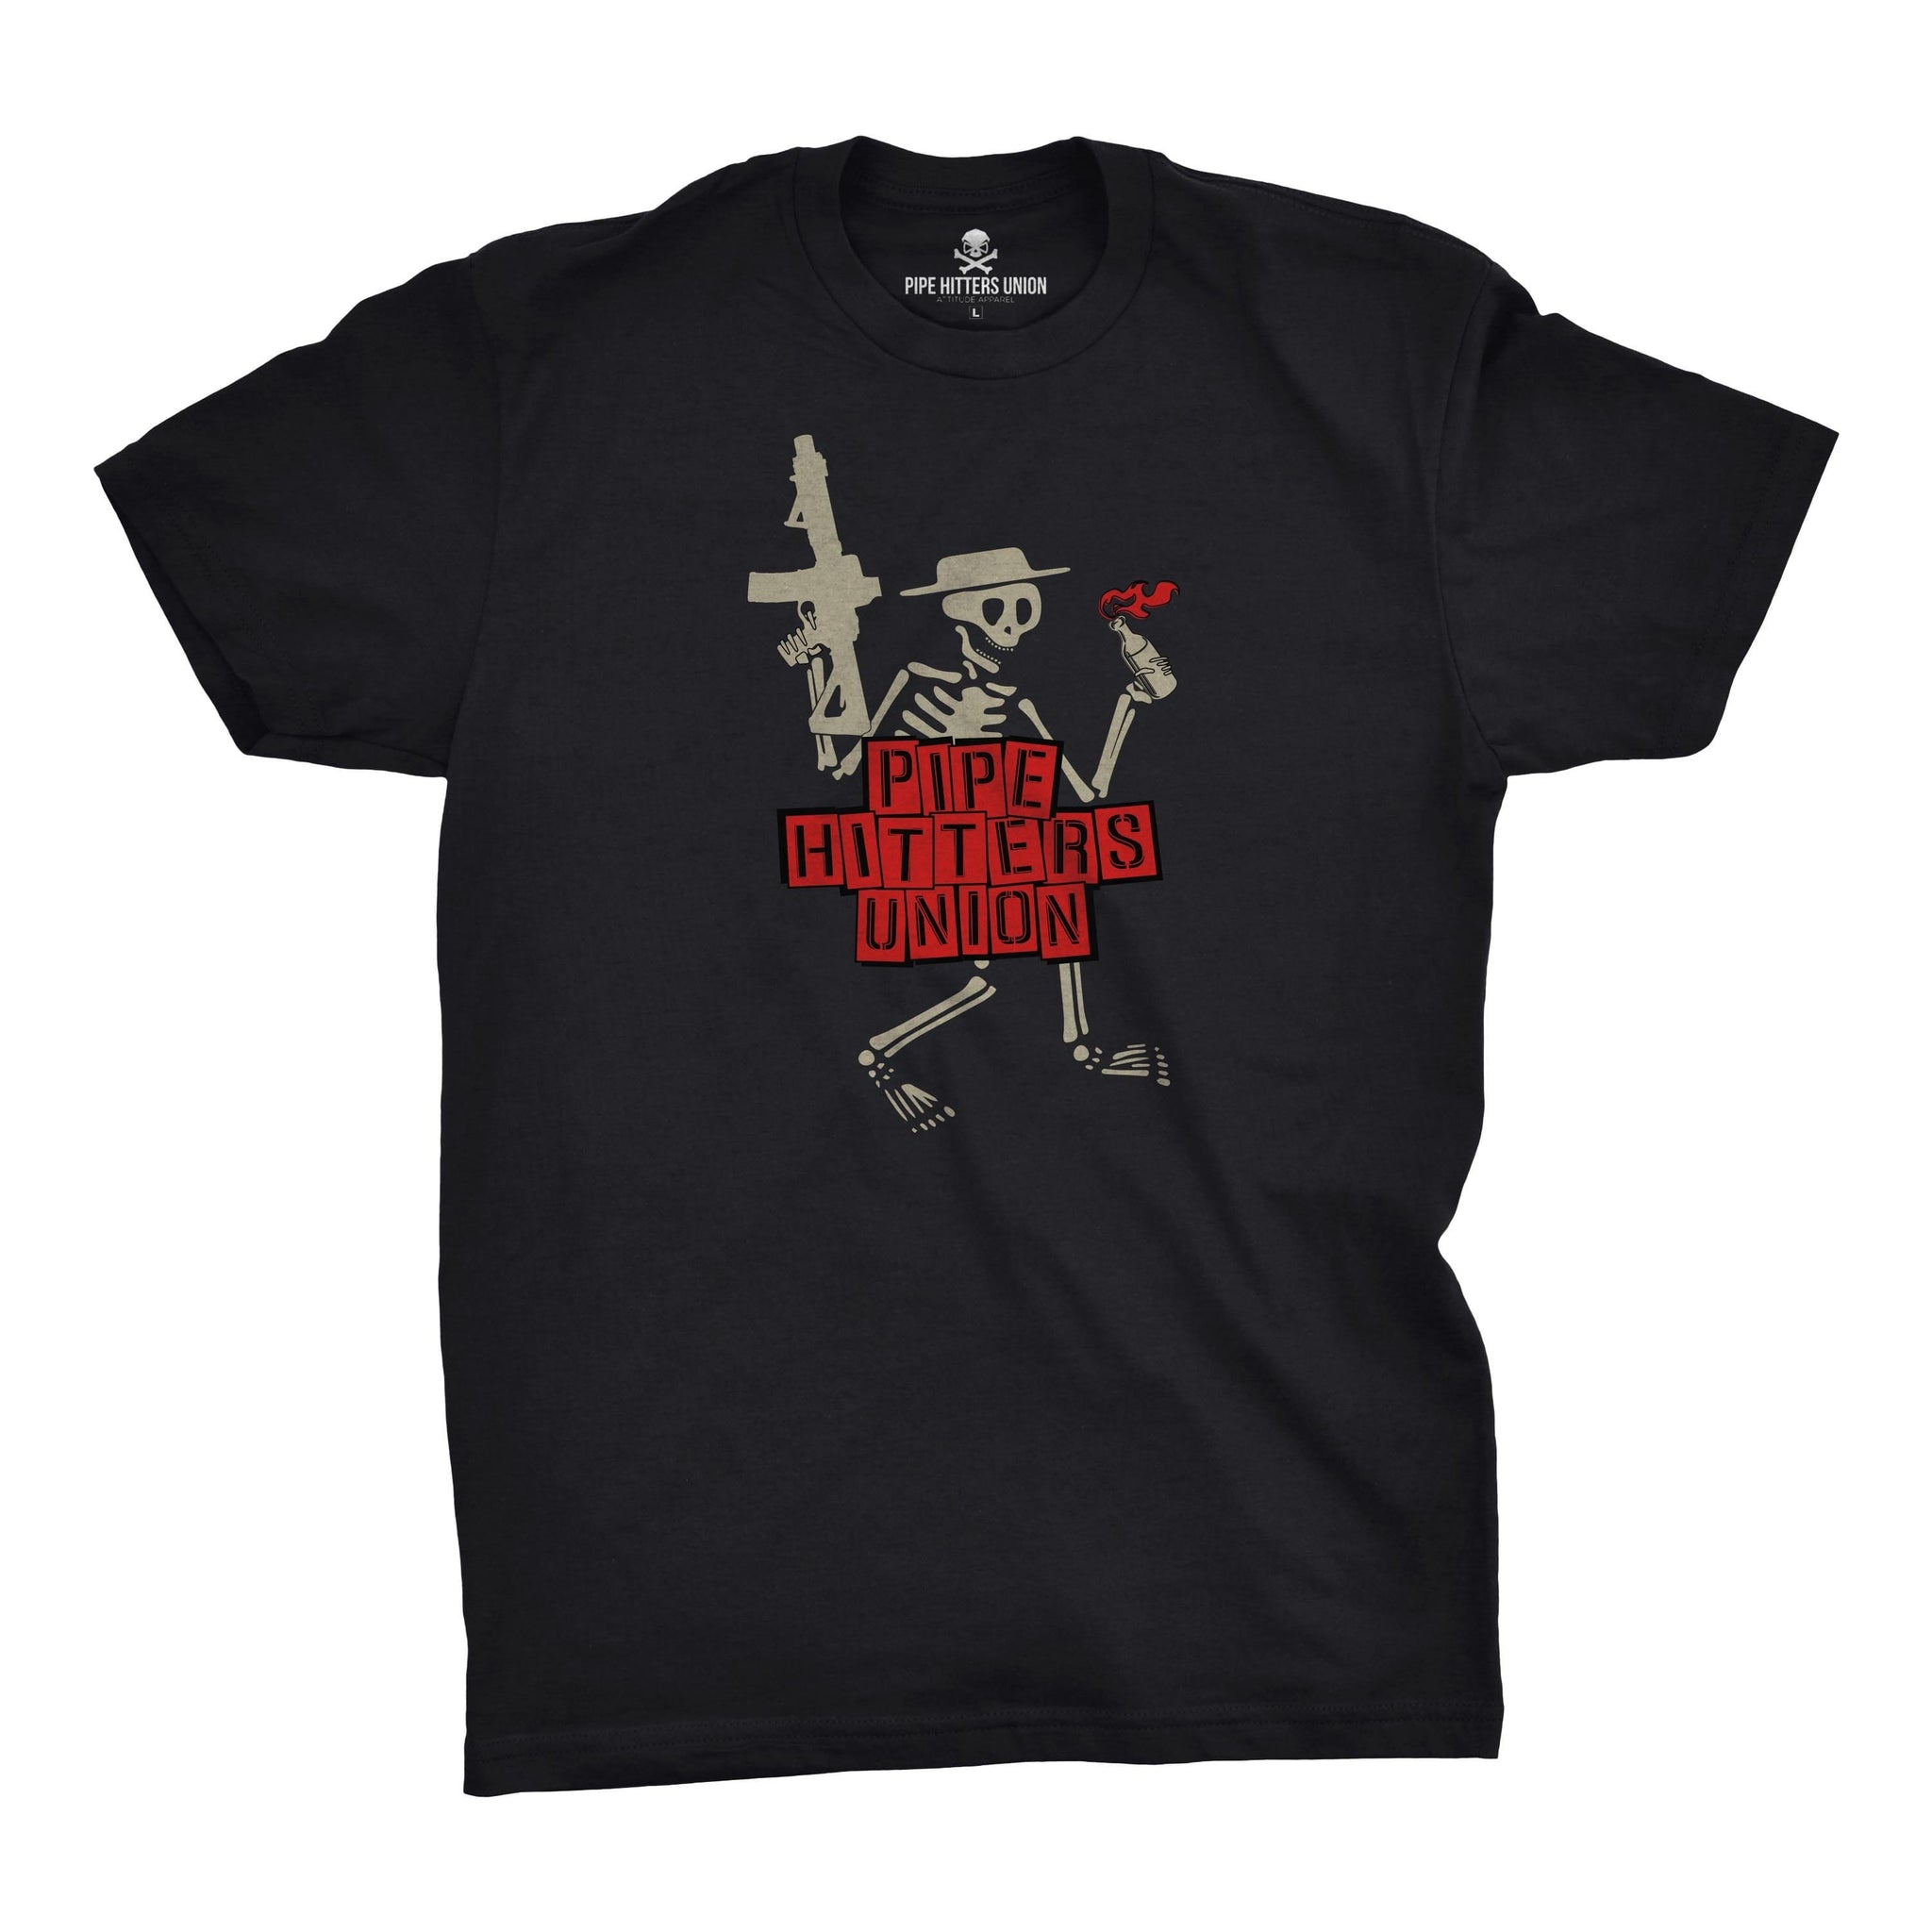 Punk Hitter - Black - T-Shirts - Pipe Hitters Union